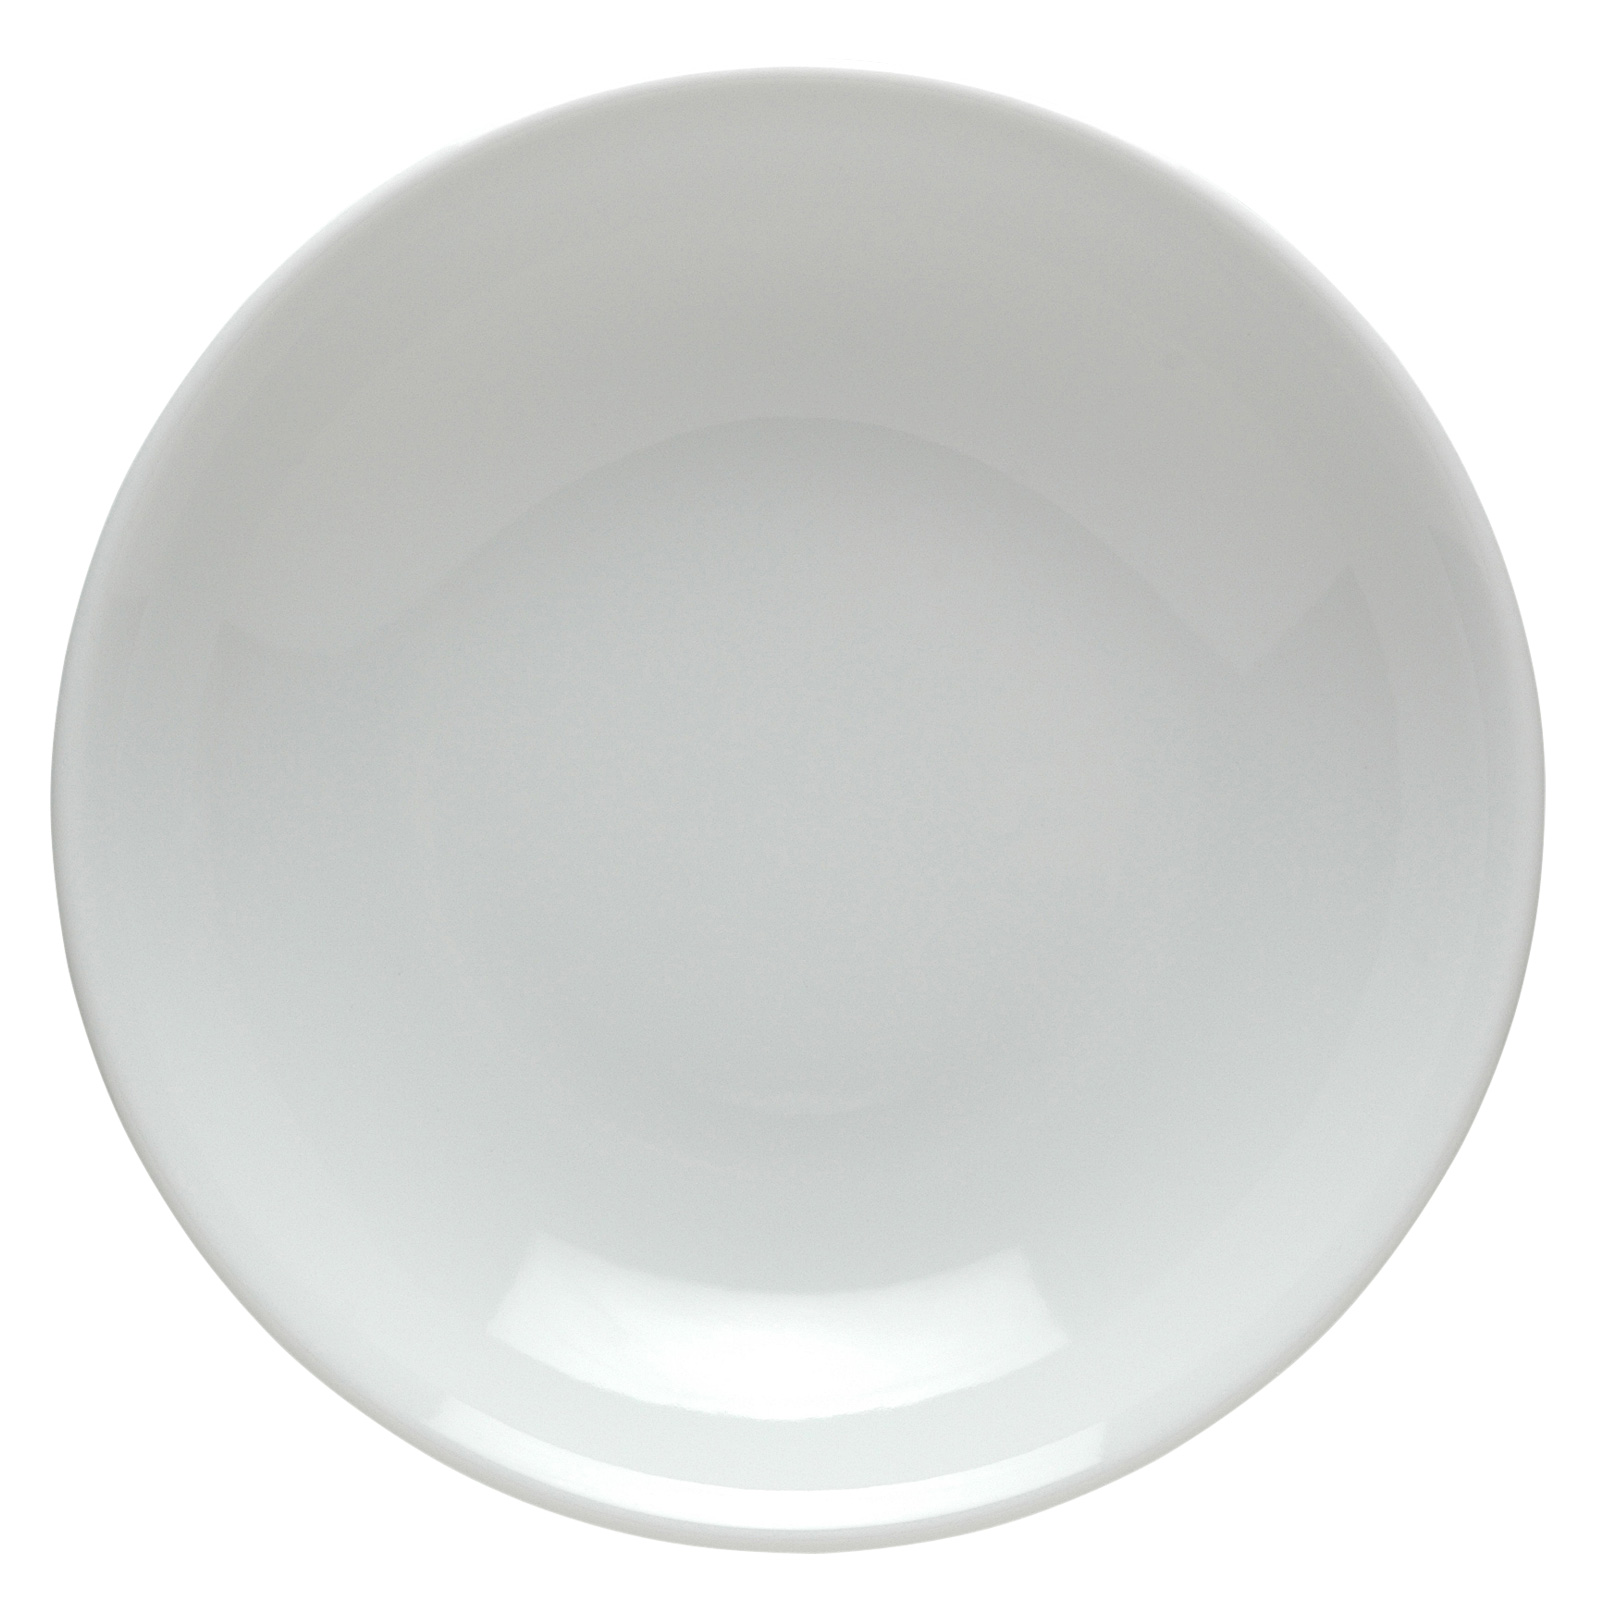 Hotel Collection Plates: Hotel Flat Plate Medium